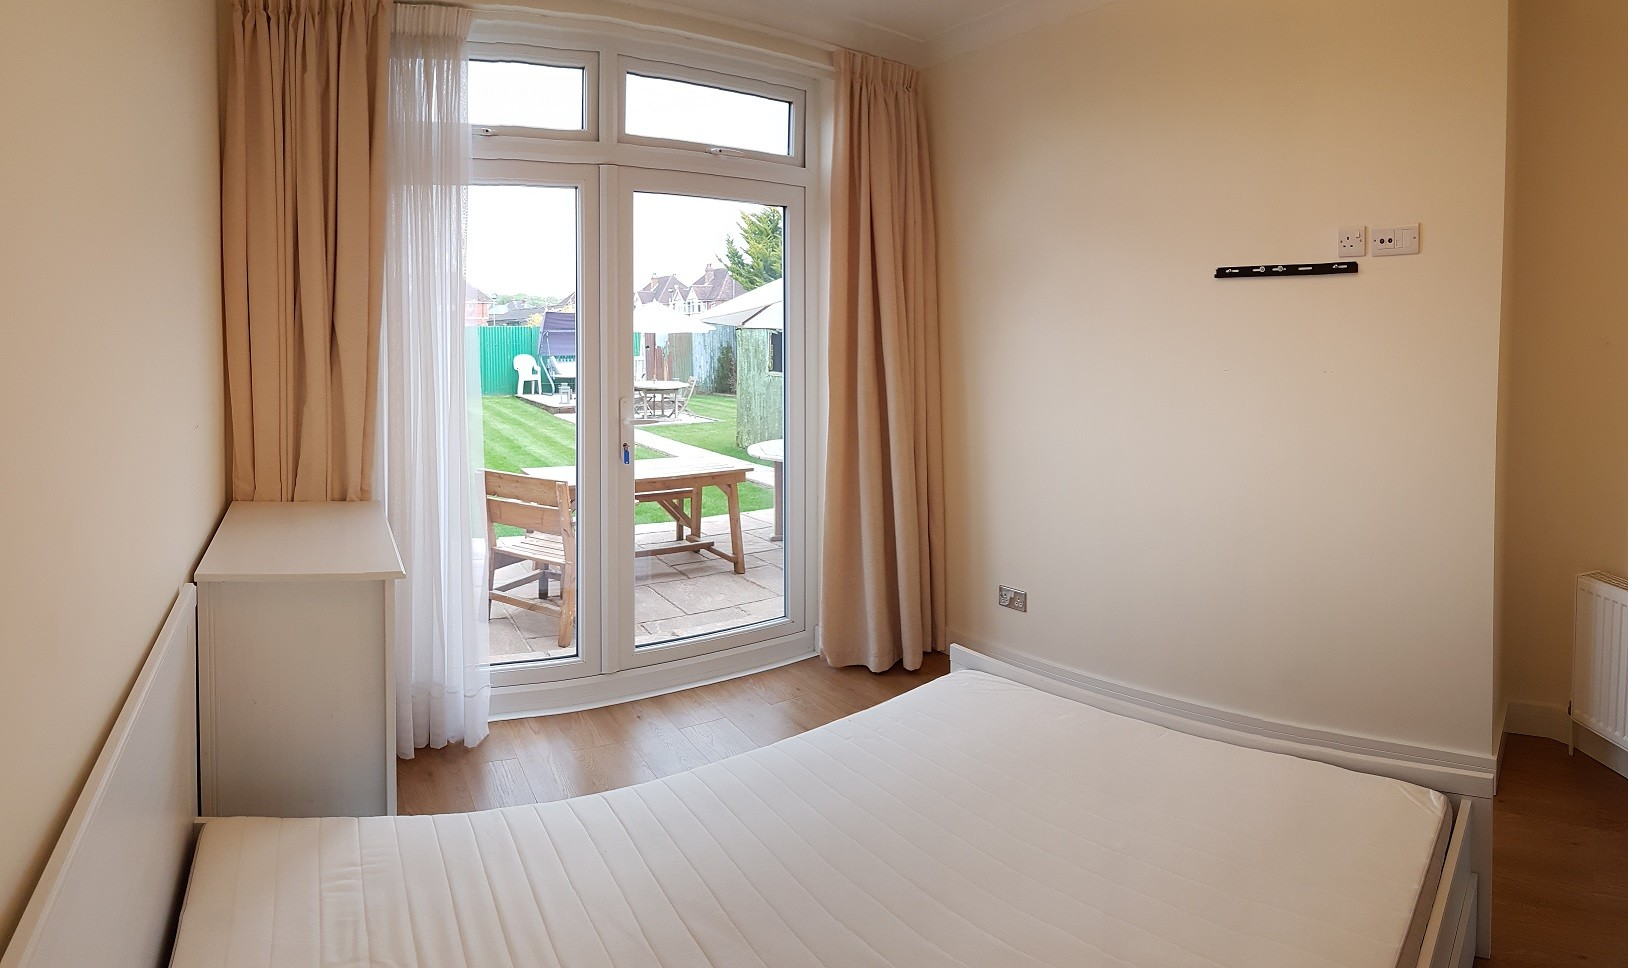 Small Double room in Luxury Shared House in Southampton, UK